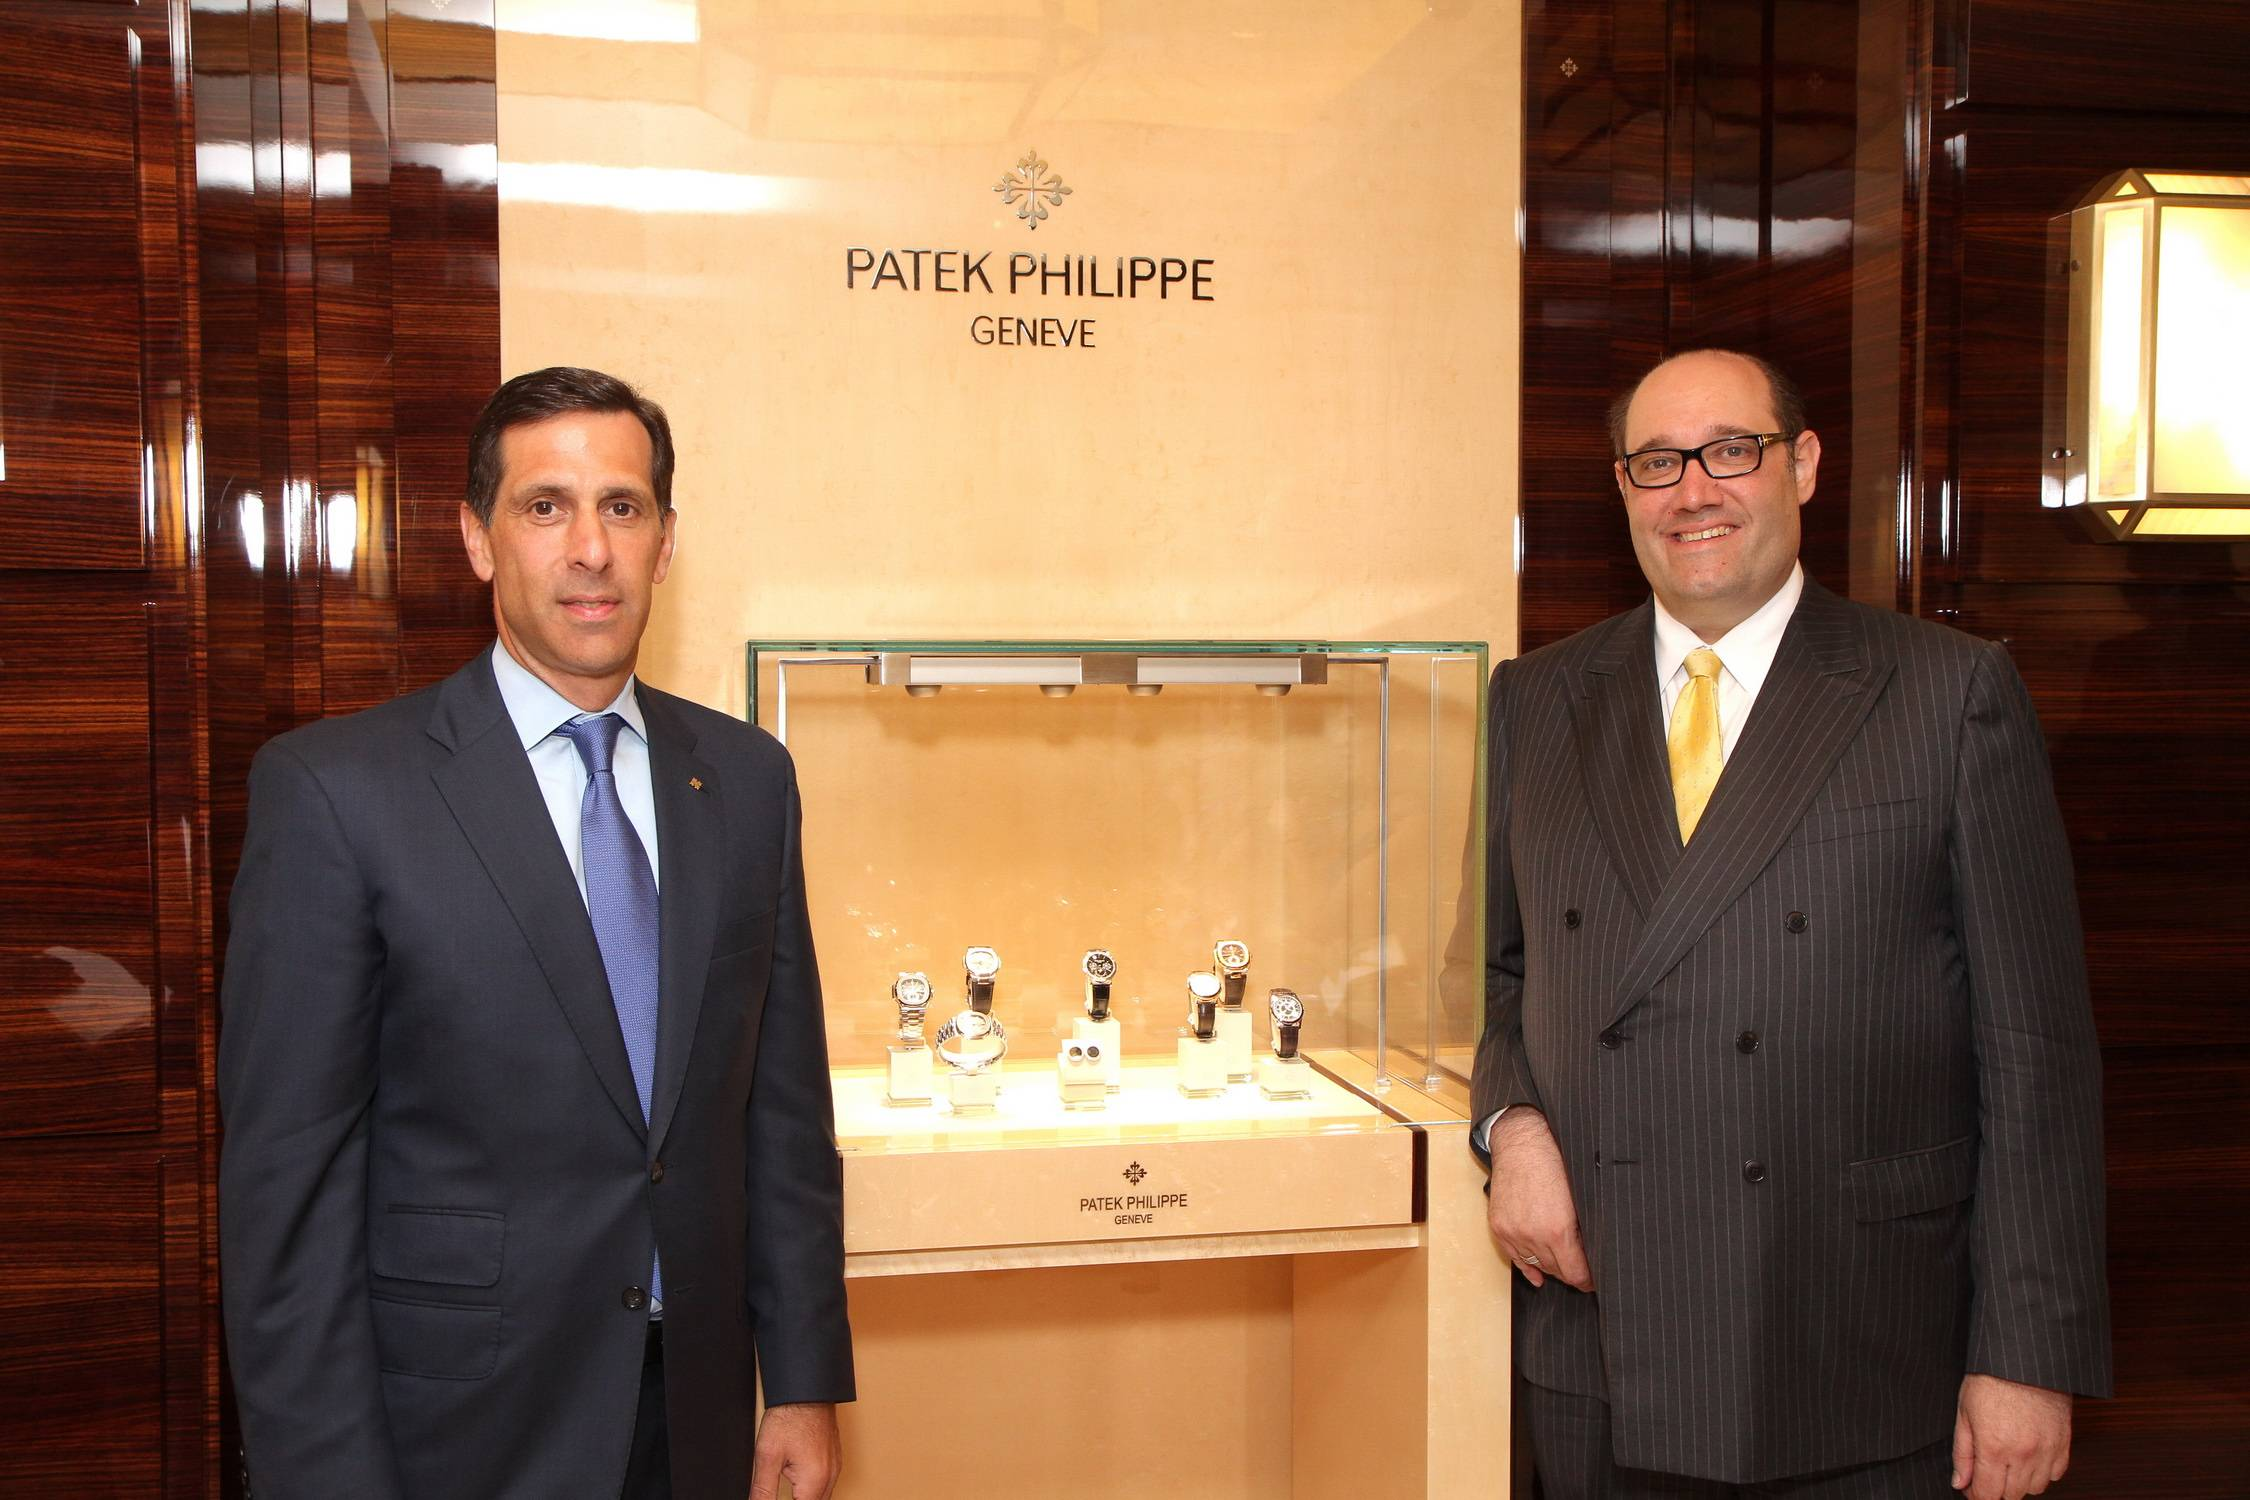 Larry Pettinelli + Tom Blumenthal Patek Philippe